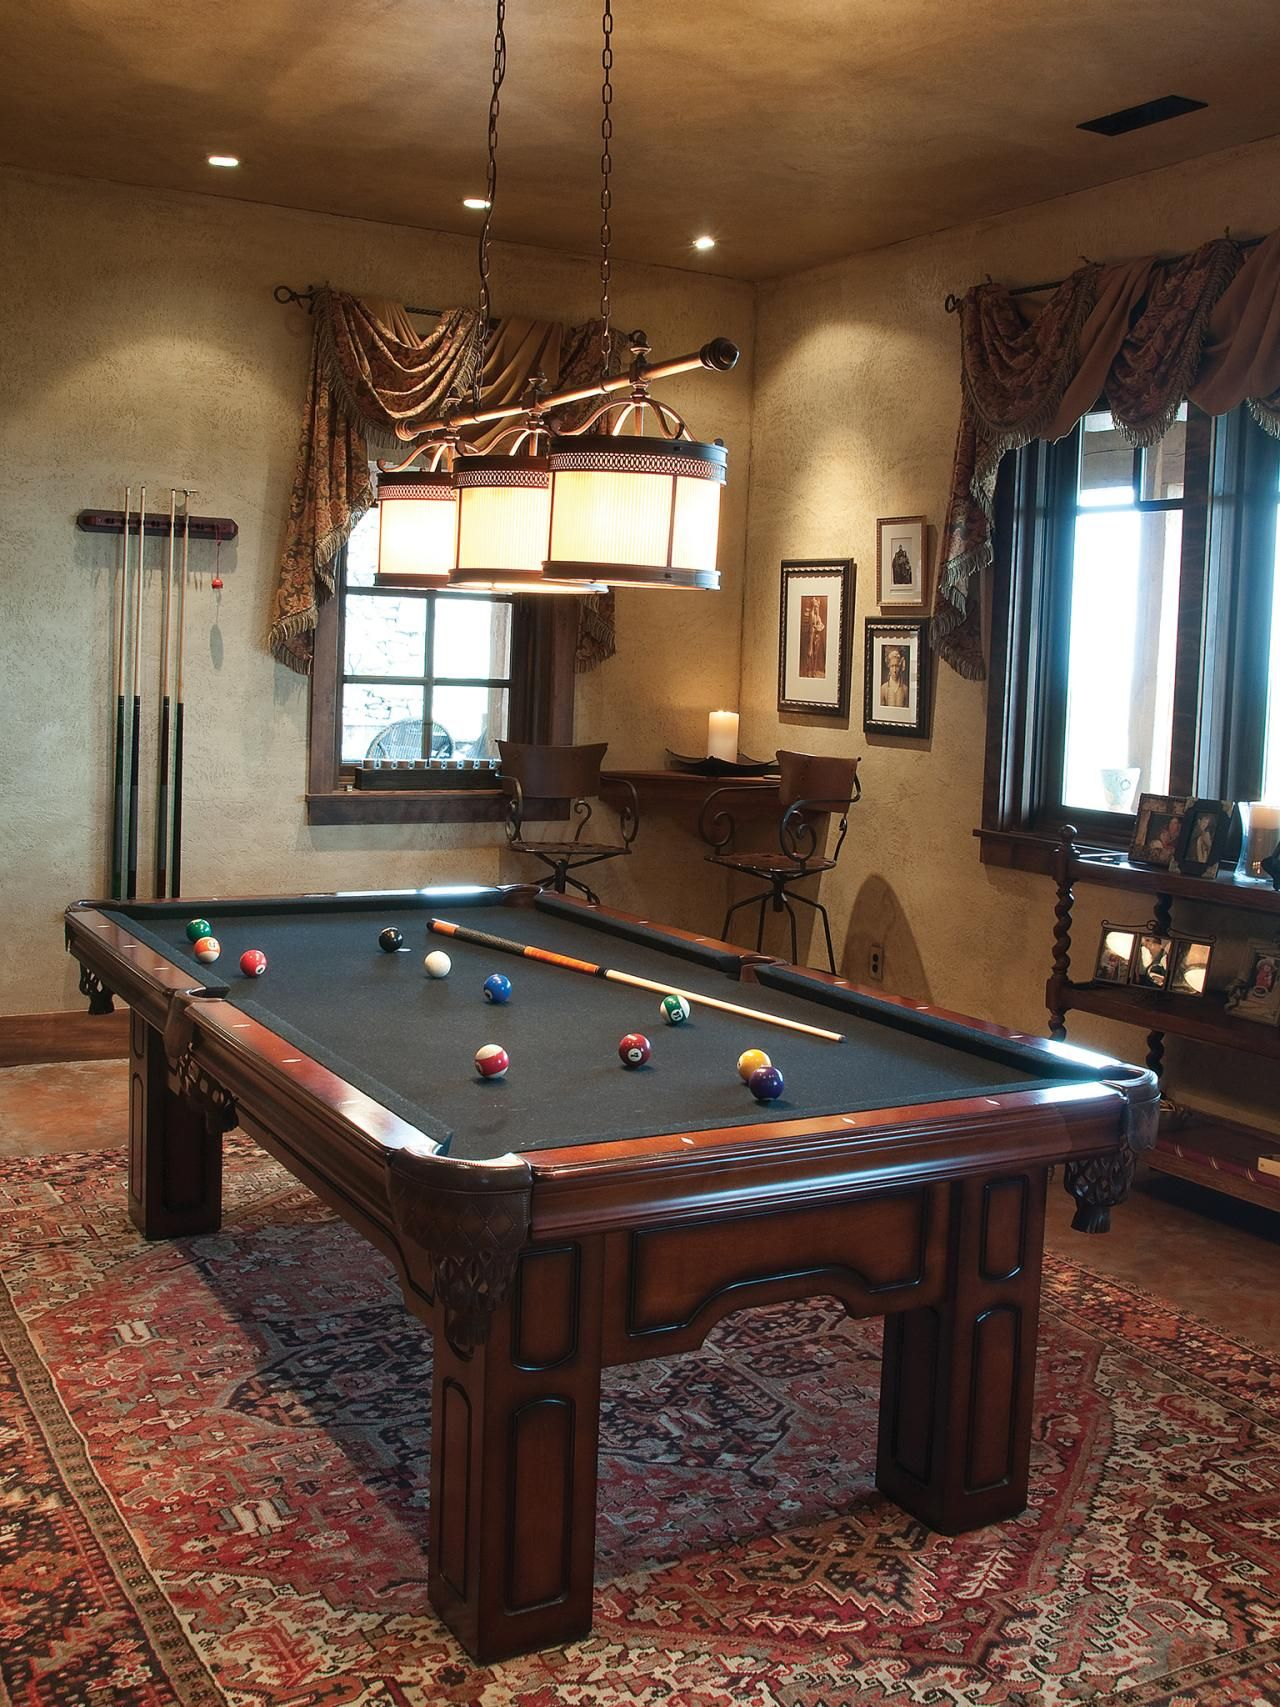 Charmant A Lotus Pattern Oriental Carpet And Antique Pool Table Imbue This Playroom  With The Elegance Of A Gentlemanu0027s Club.